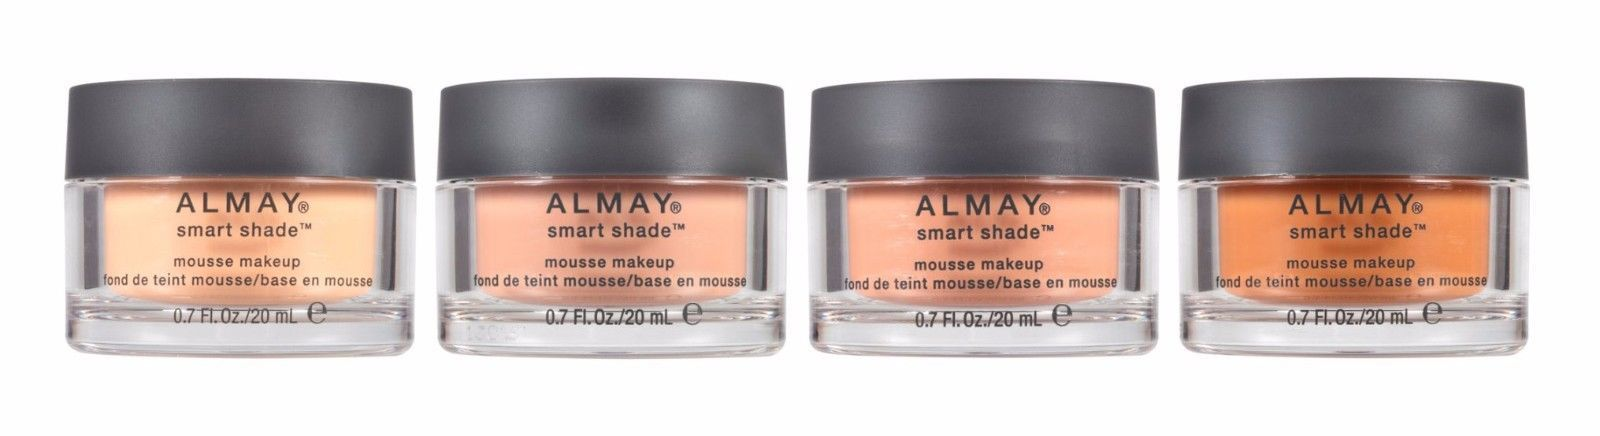 ALMAY* Smart Shade MOUSSE MAKEUP Sensitive Skin FOUNDATION Tub *YOU CHOOSE*  New!